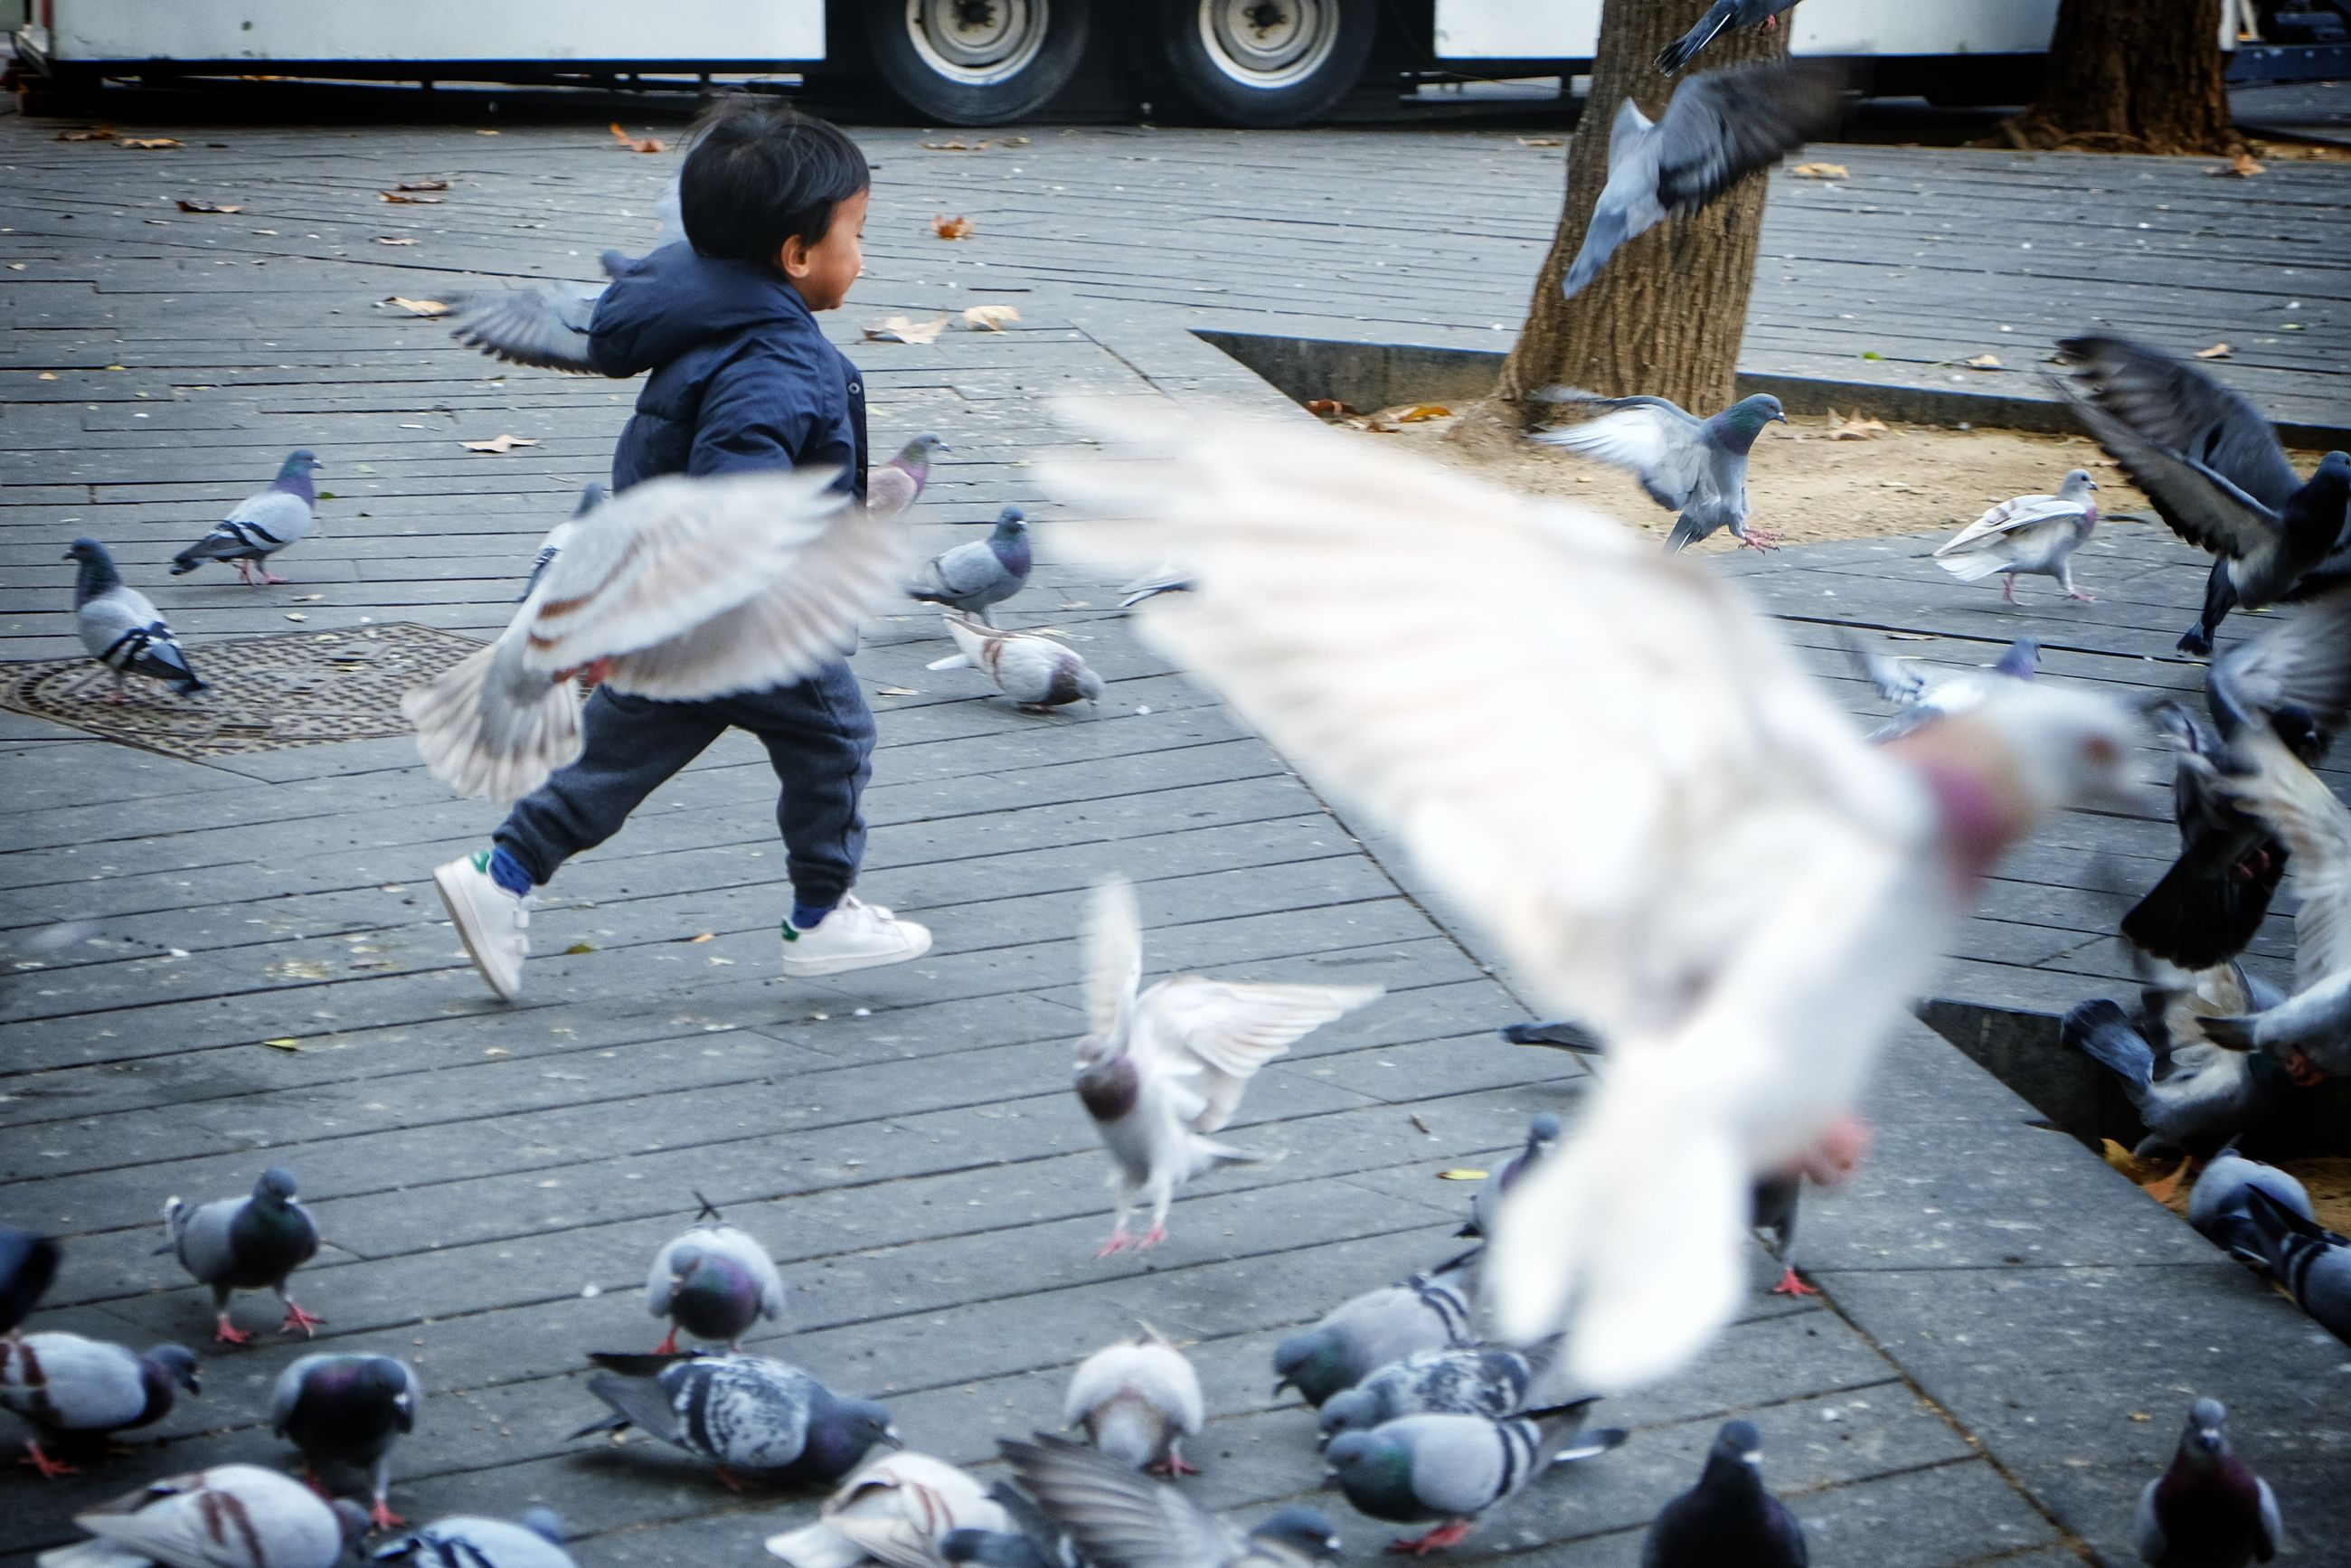 bird, vertebrate, animal wildlife, animals in the wild, group of animals, pigeon, flying, large group of animals, motion, blurred motion, flock of birds, real people, men, day, street, spread wings, leisure activity, feeding, seagull, flapping, paving stone